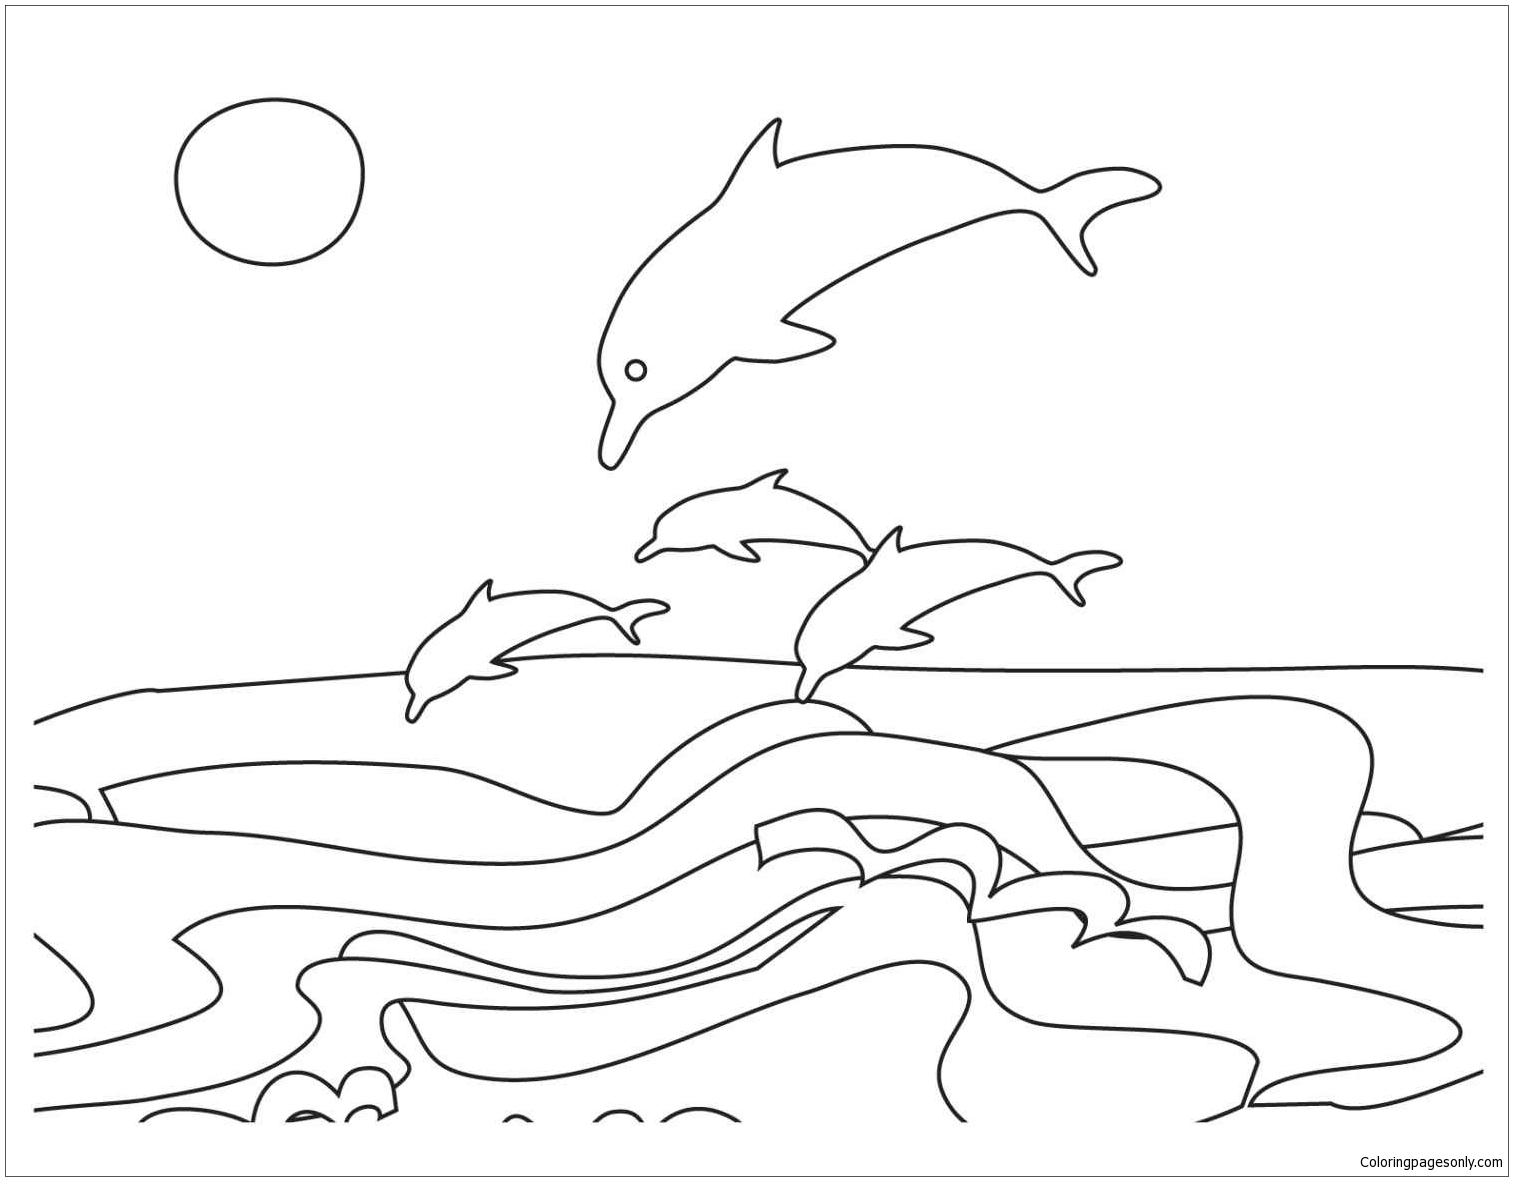 tropical coloring pages tropical leaves coloring pages at getdrawings free download coloring tropical pages